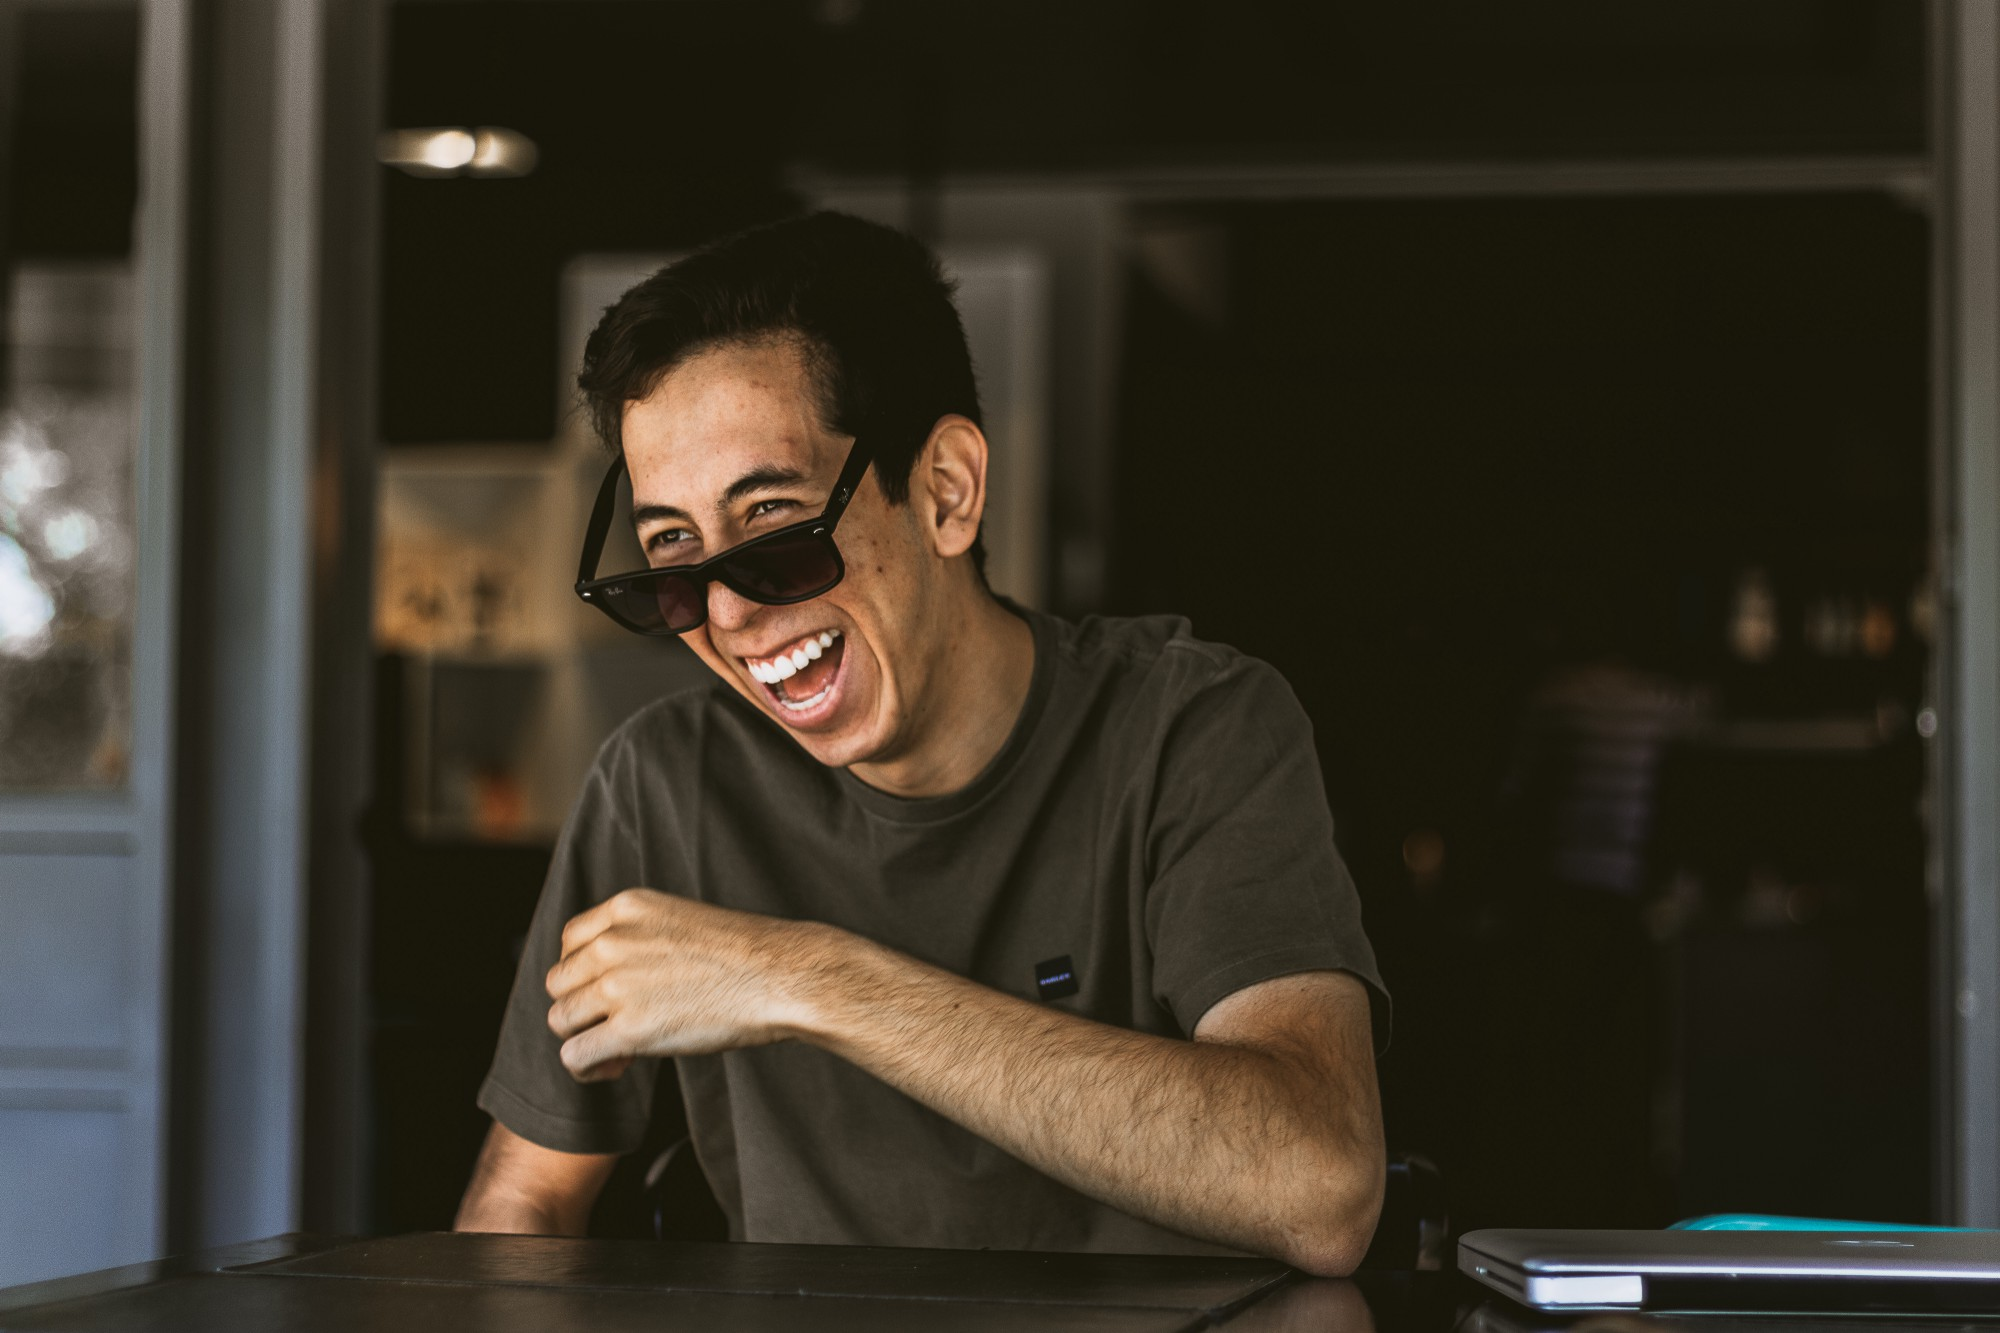 man in sunglasses, laughing